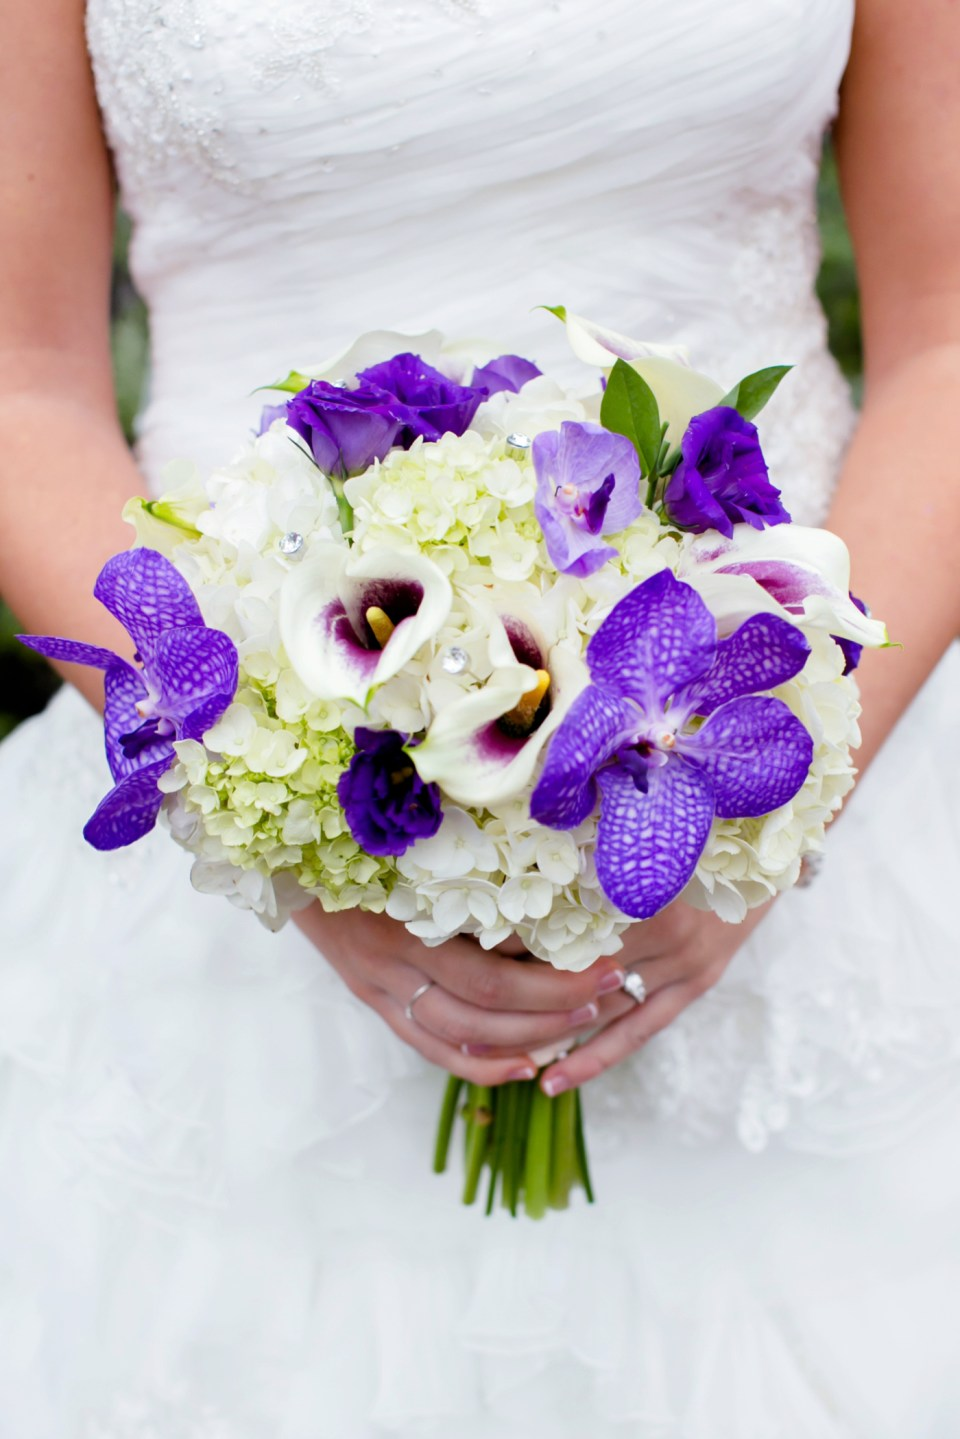 Wedding-Bouquet-Inspiration-Flowers-Bridal-Bridesmaids338